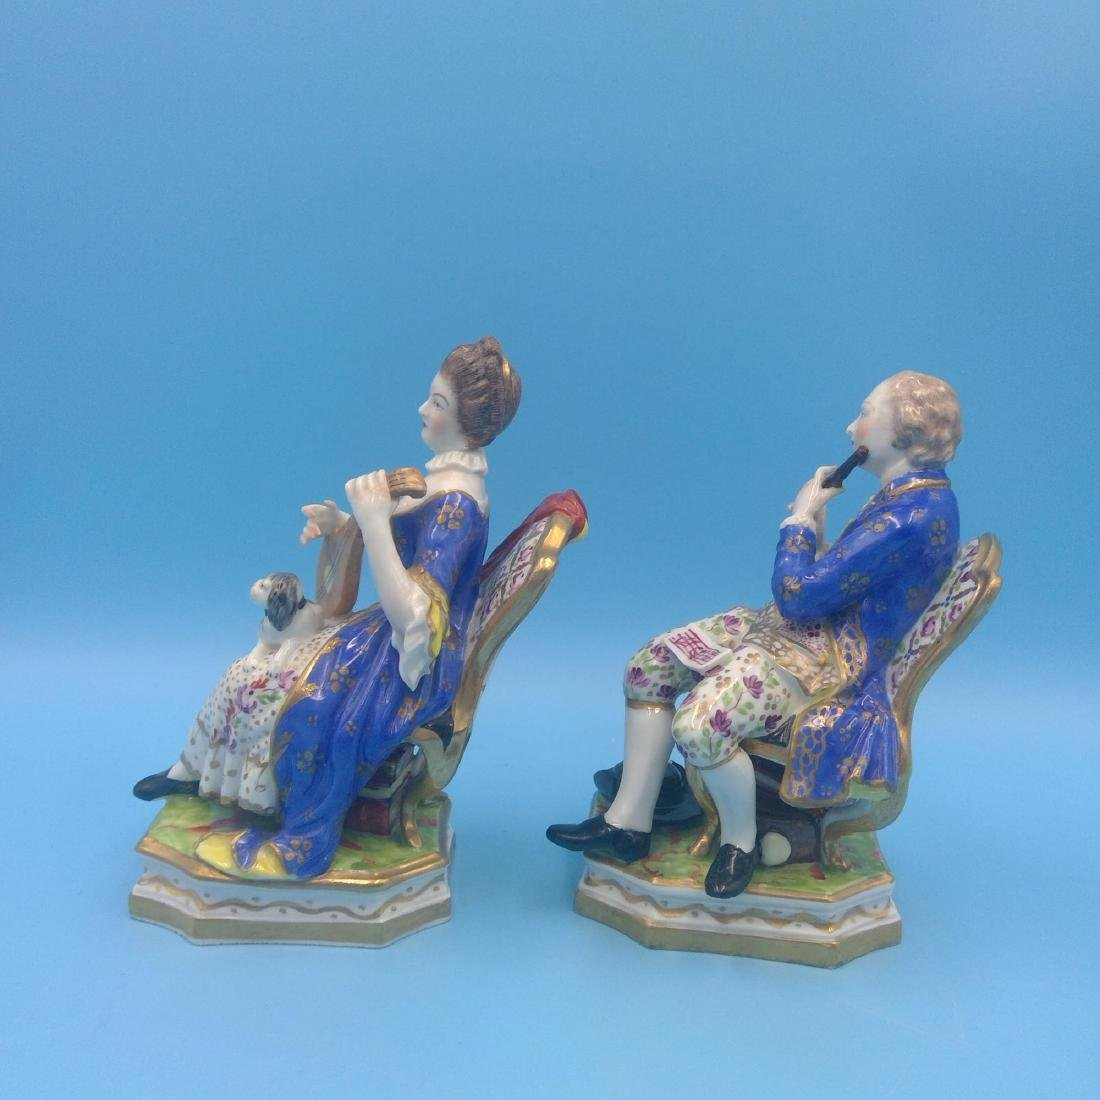 PAIR OF DERBY 18thC ENGLISH PORCELAIN FIGURINES - 2